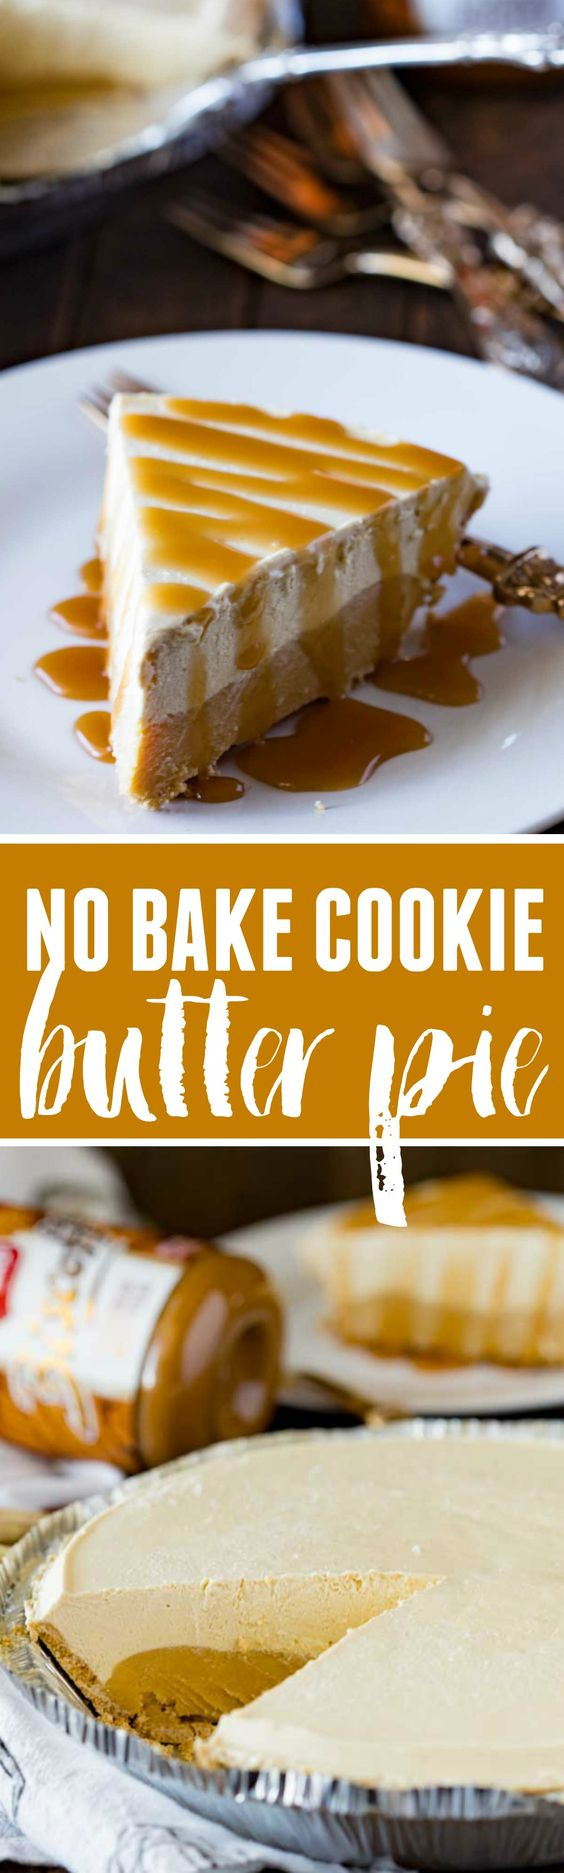 No-Bake Cookie Butter Pie Dessert Recipe via The Recipe Critic - This 5 ingredient Cookie Butter frozen pie will rock your tastebuds and make you one happy camper! Plus it takes less than 15 minutes to make, and an hour to freeze. - Favorite EASY Pies Recipes - Brunch Dessert No-Bake + Bake Musts